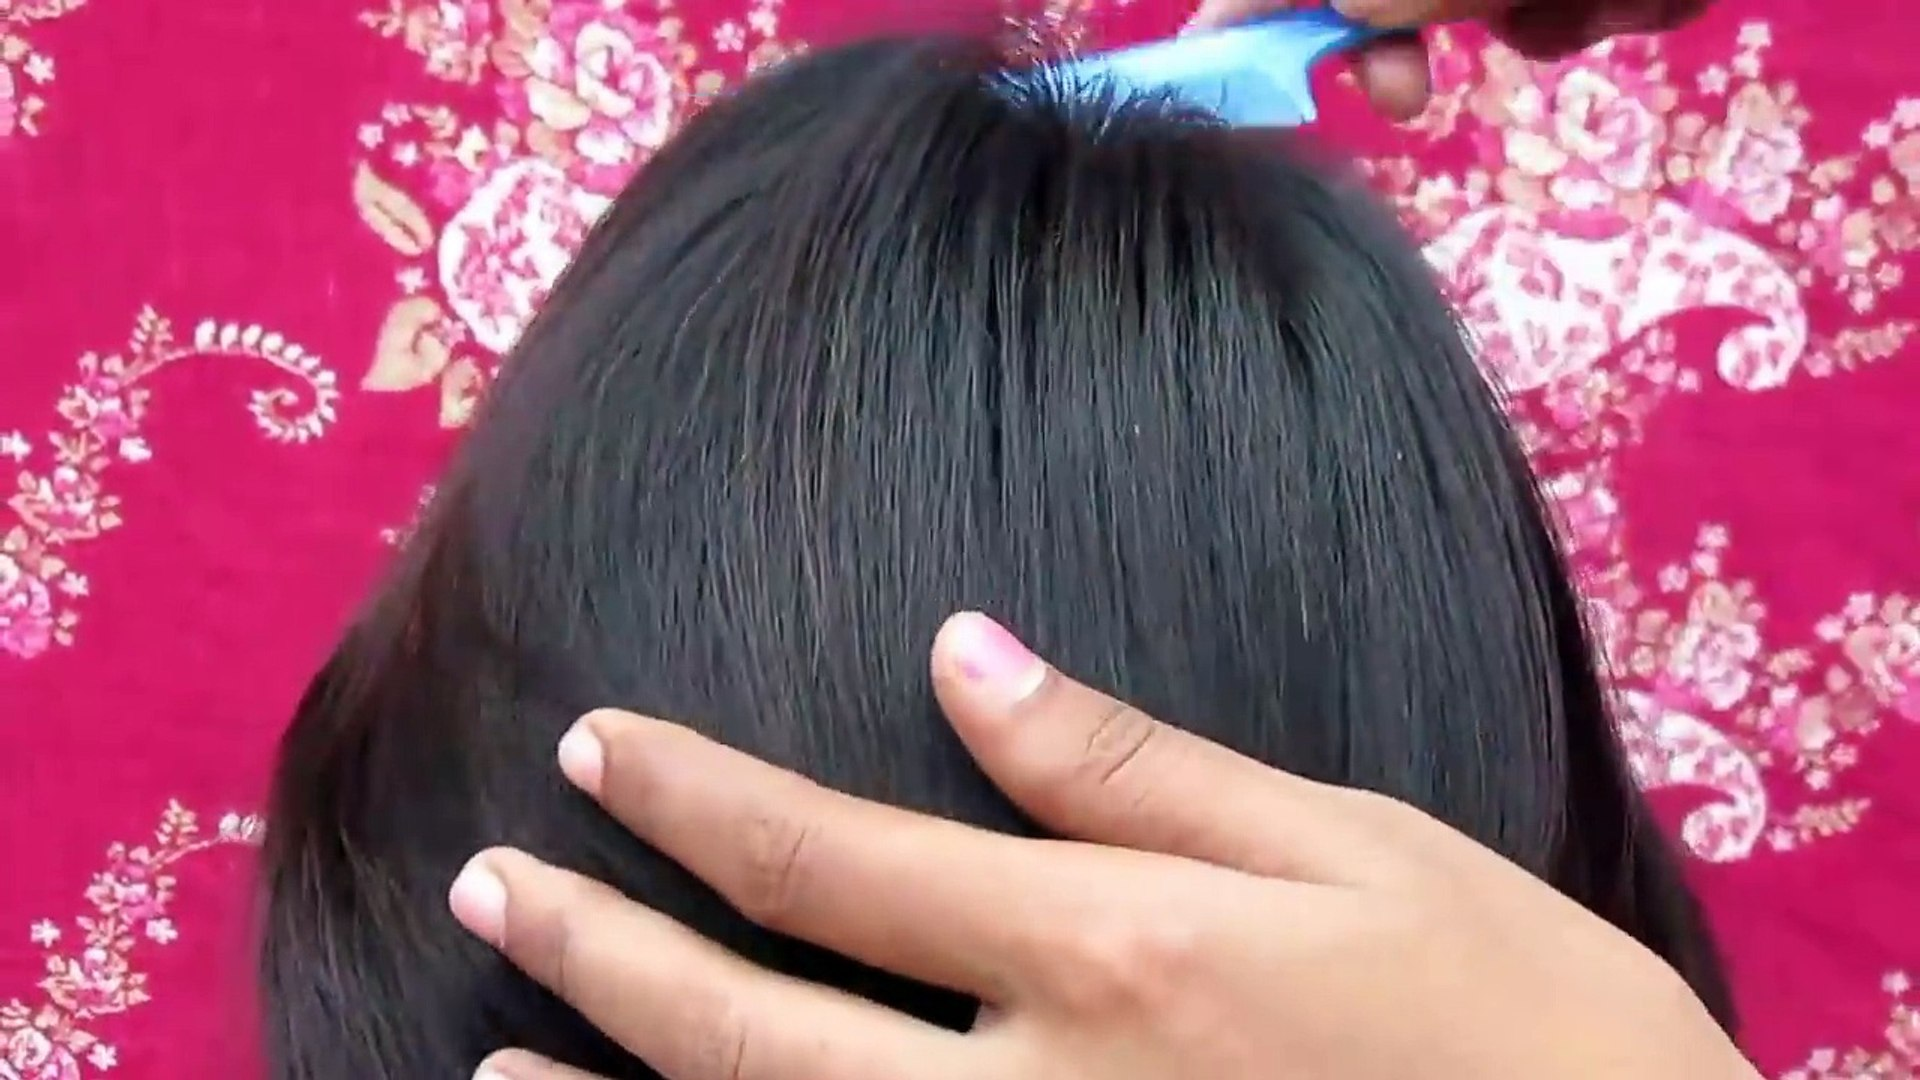 New Side Puff Hairstyle Every Day Hairstyle Video Dailymotion